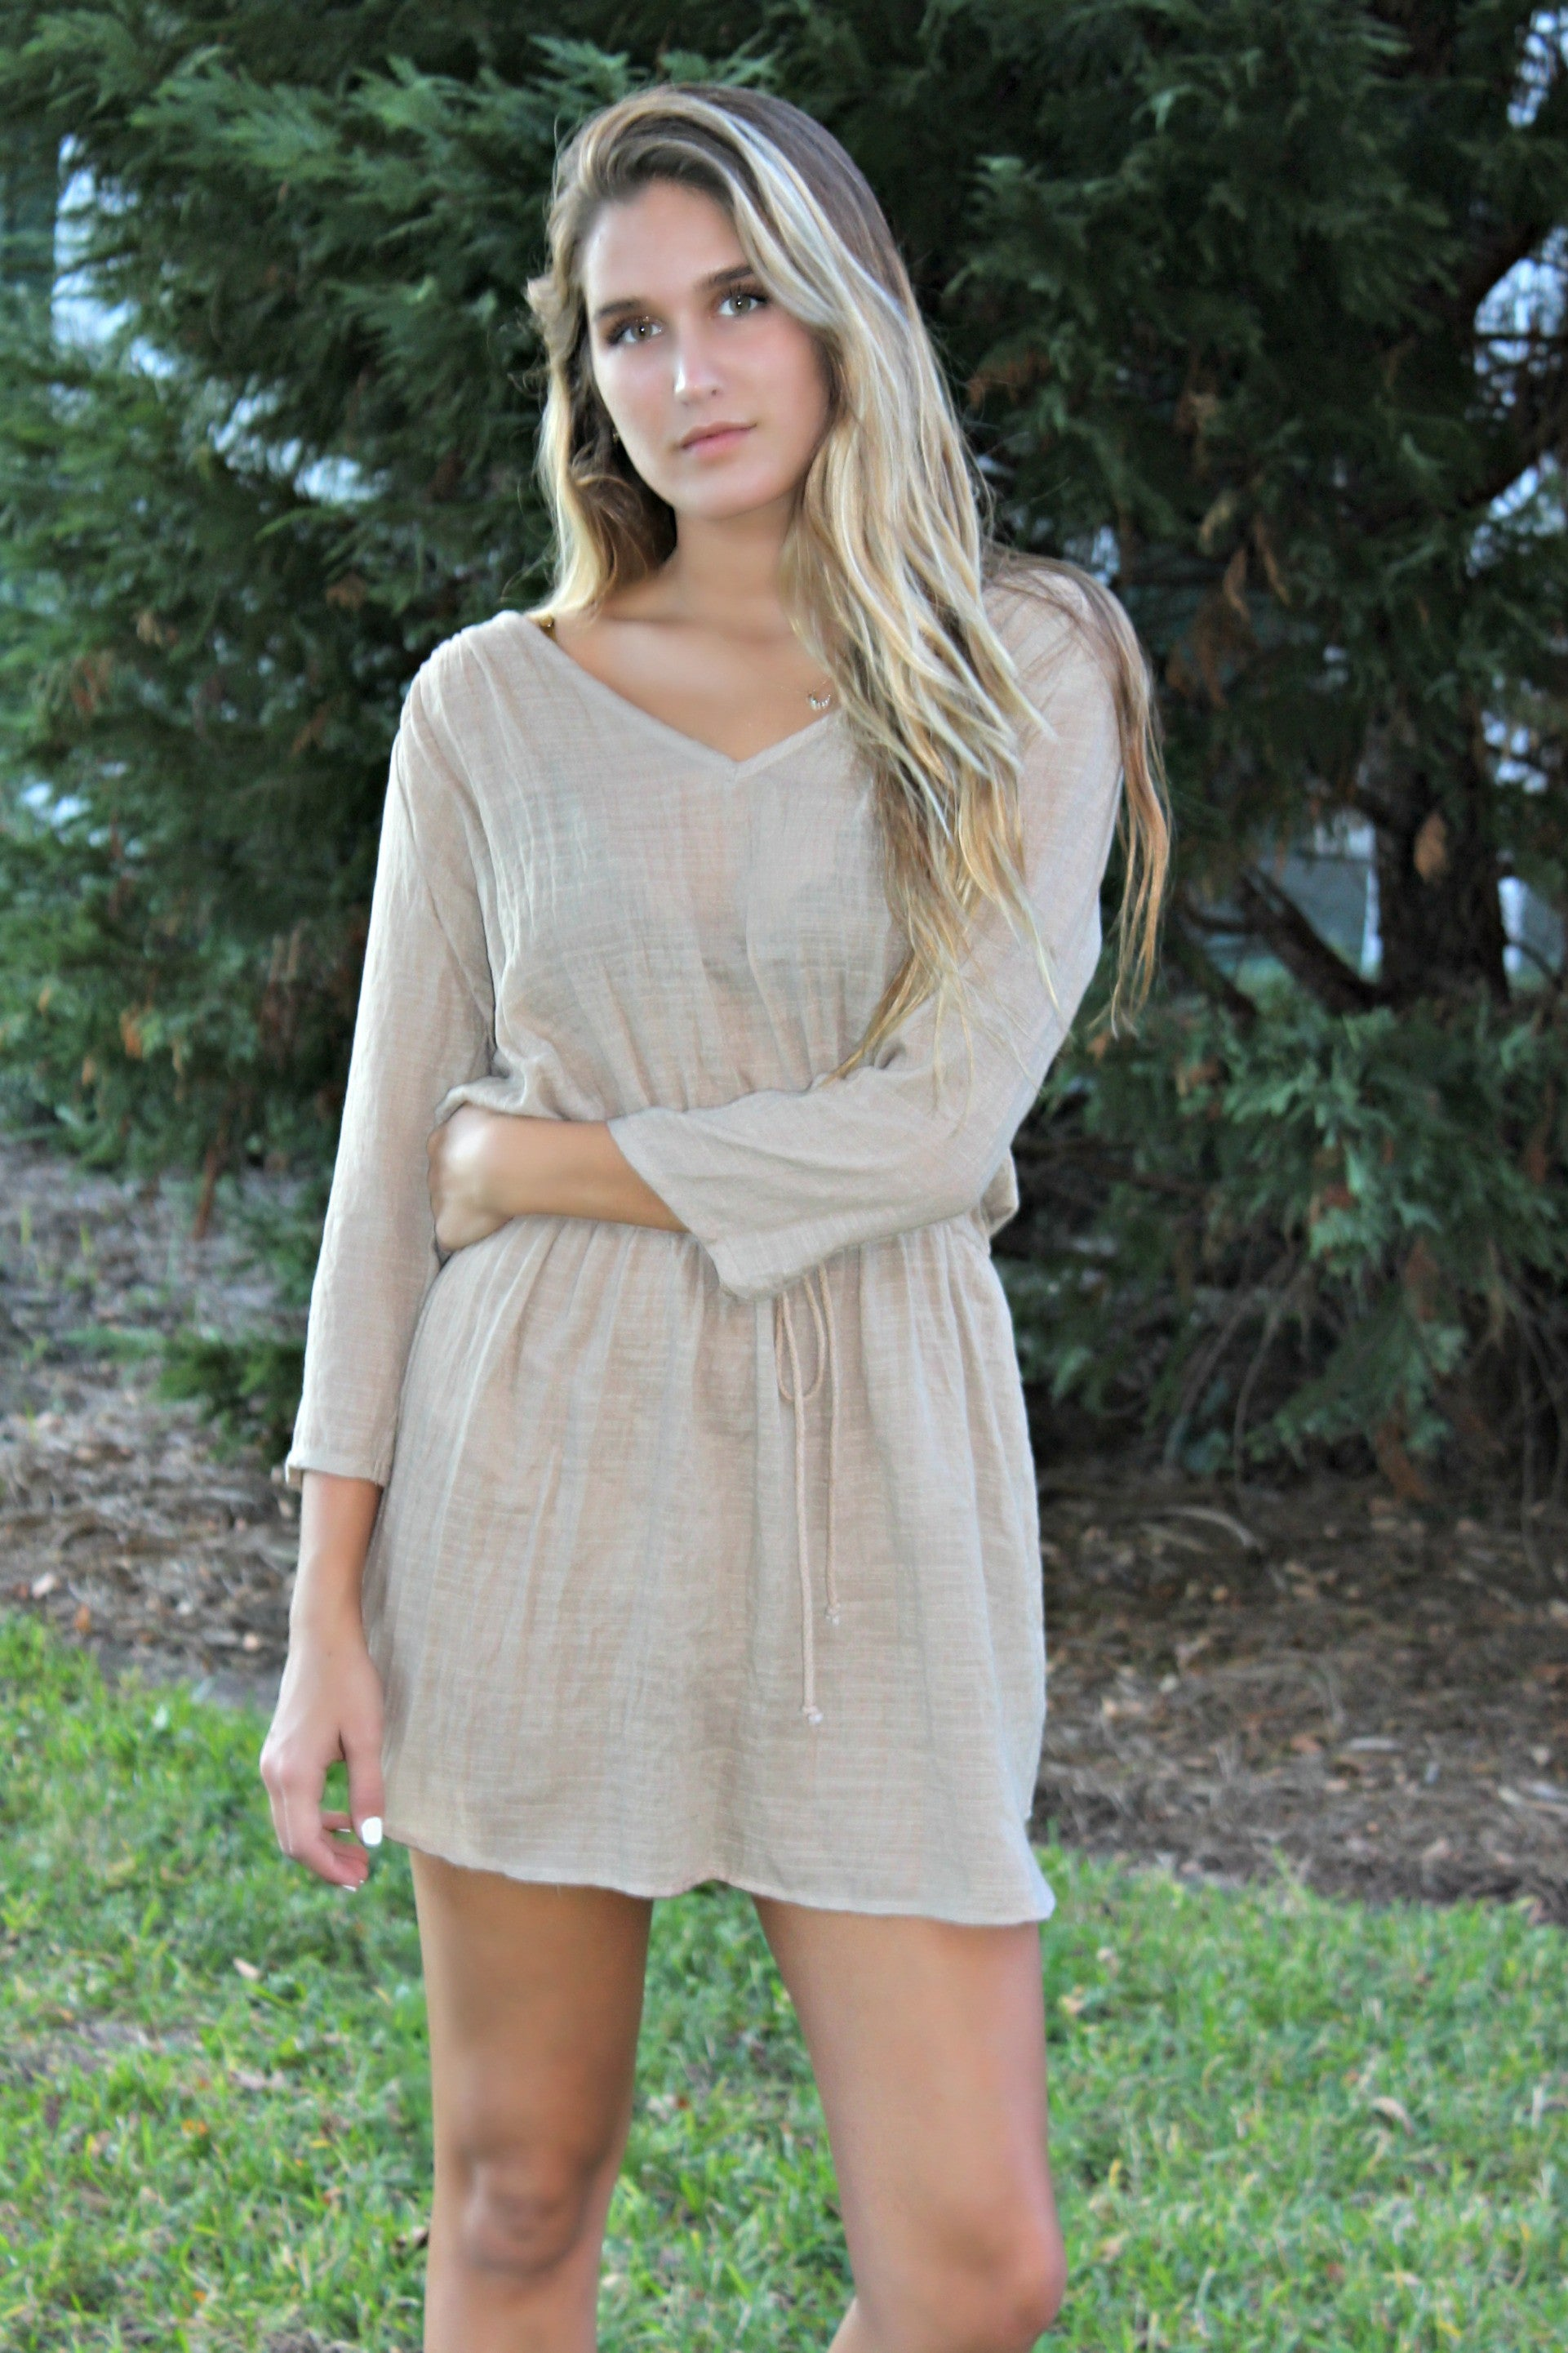 Glam: Kay Dress, Tan